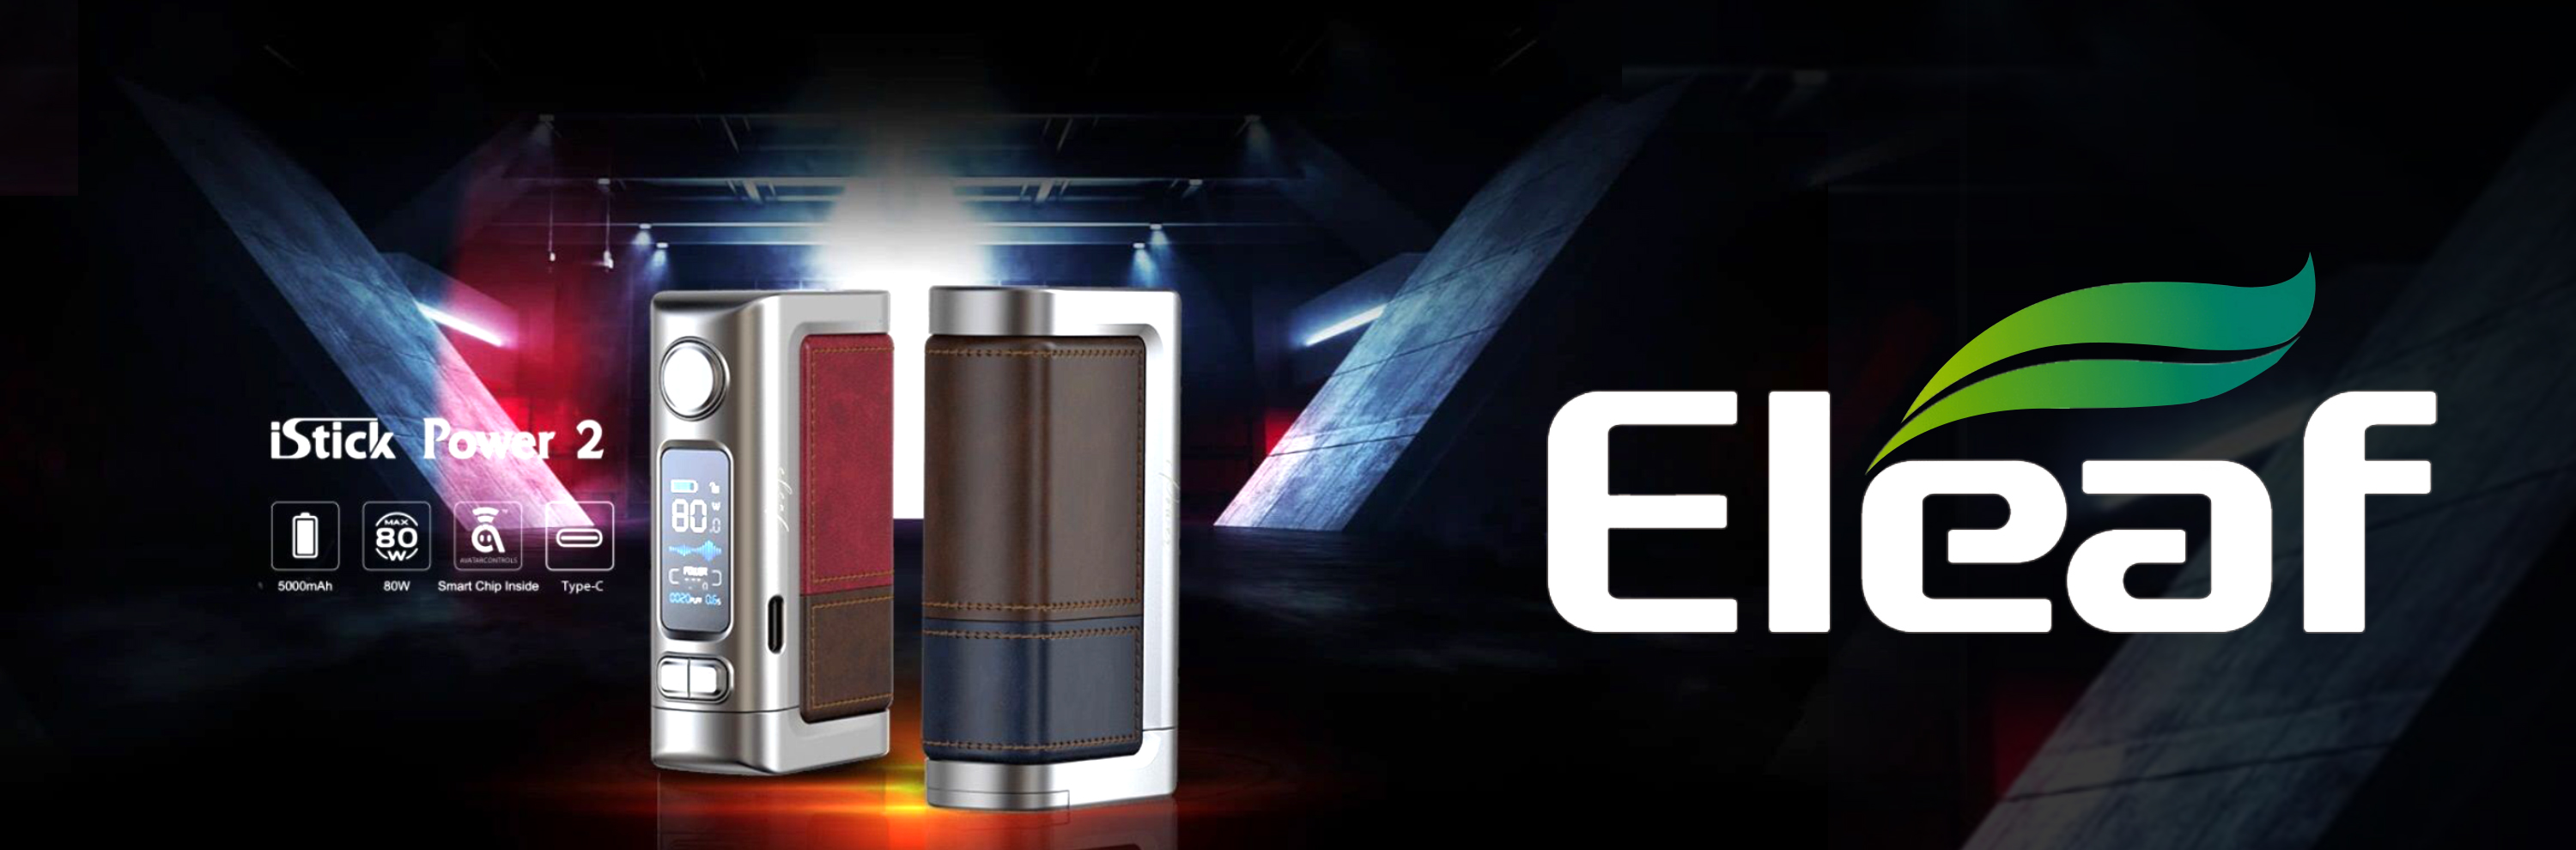 istick_power2_eleaf_banner